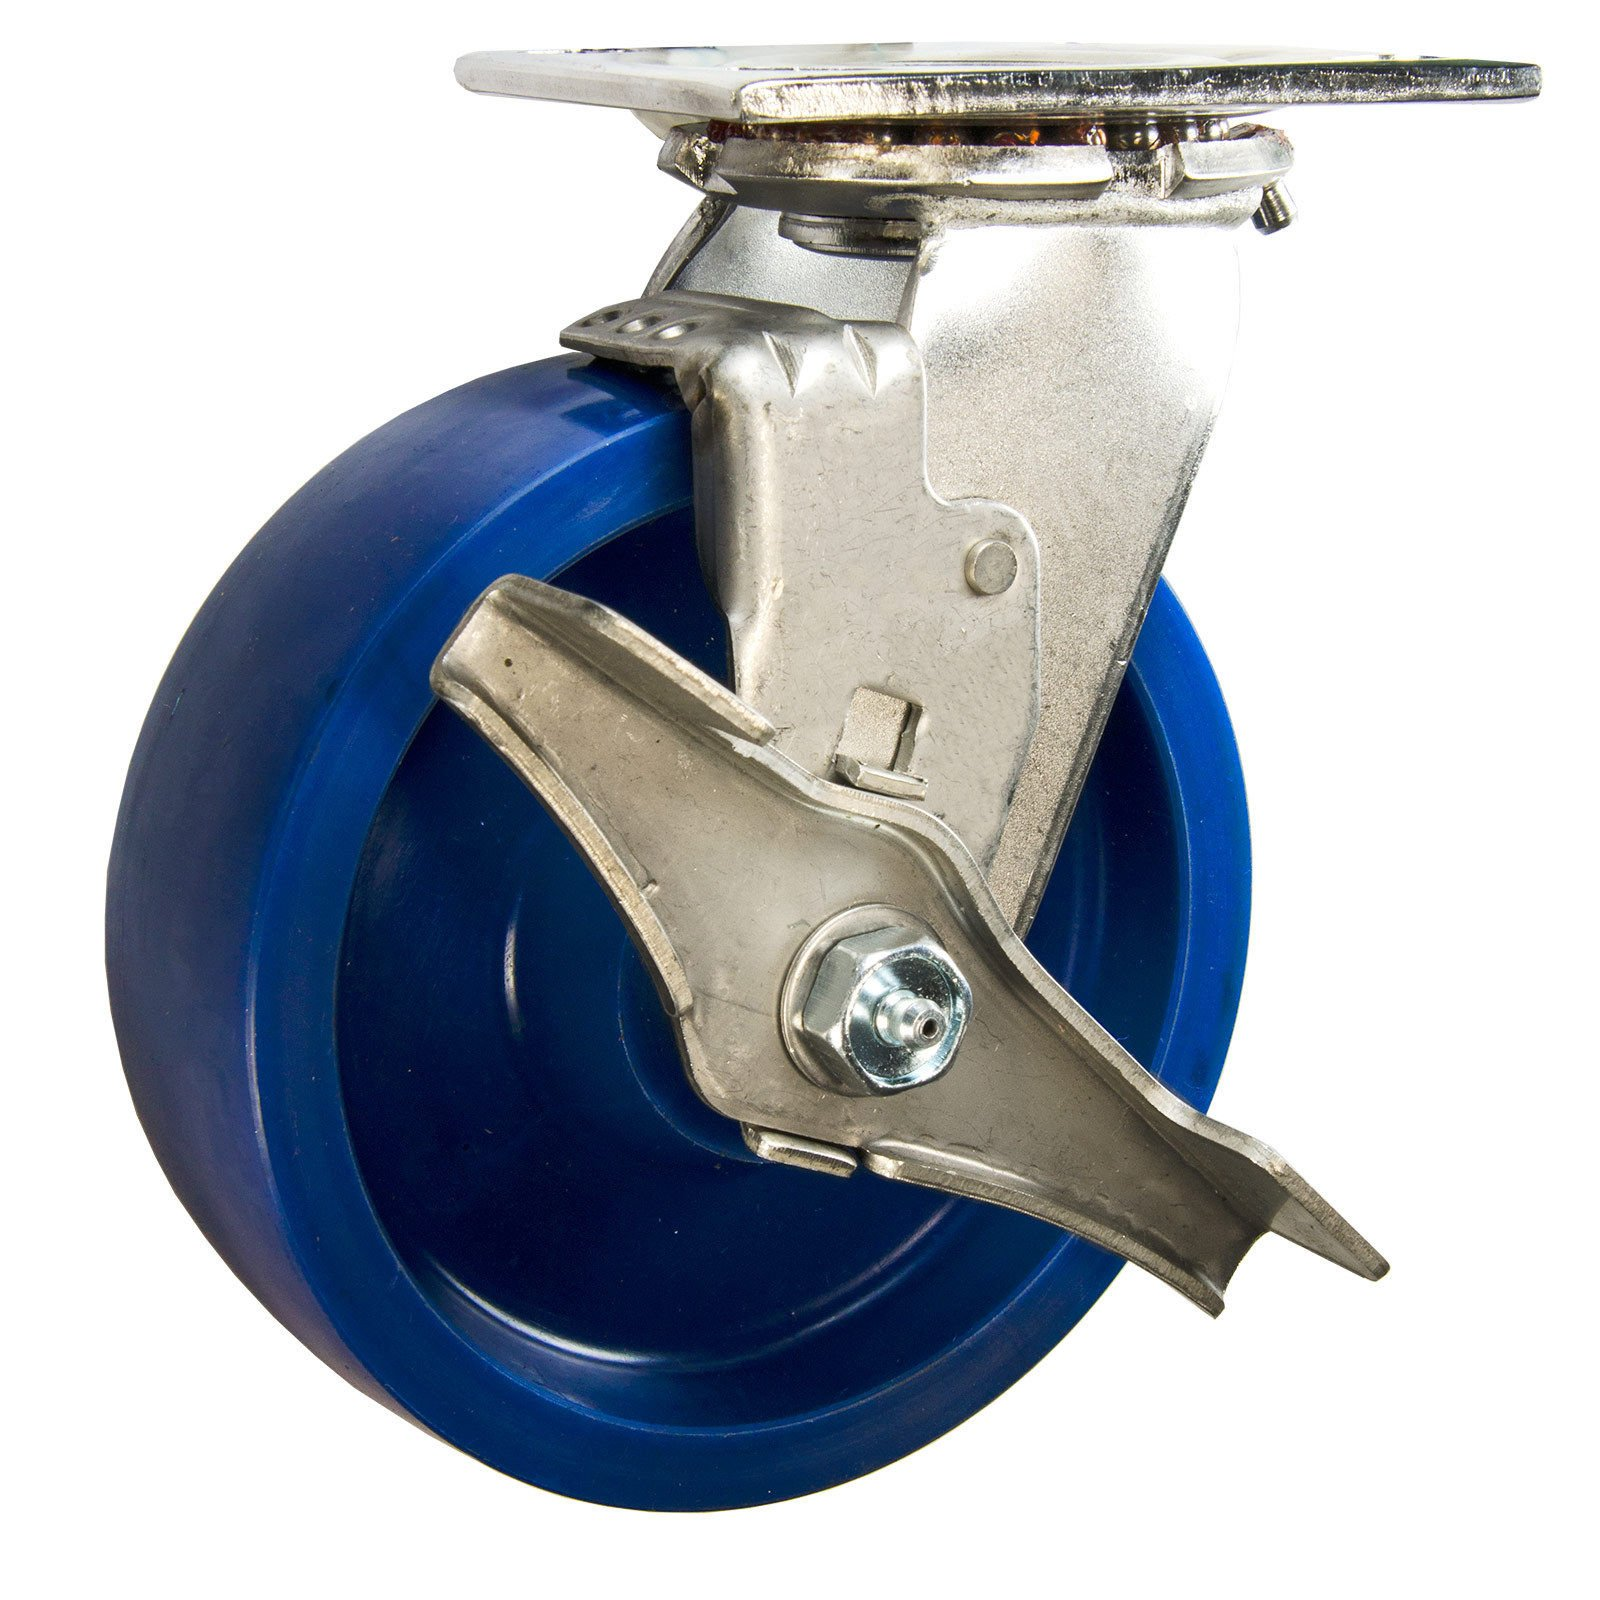 6'' Stainless Steel Swivel Caster Solid Poly Wheel with Brake - 1200 Lbs Cap Service Caster Brand by Service Caster (Image #1)